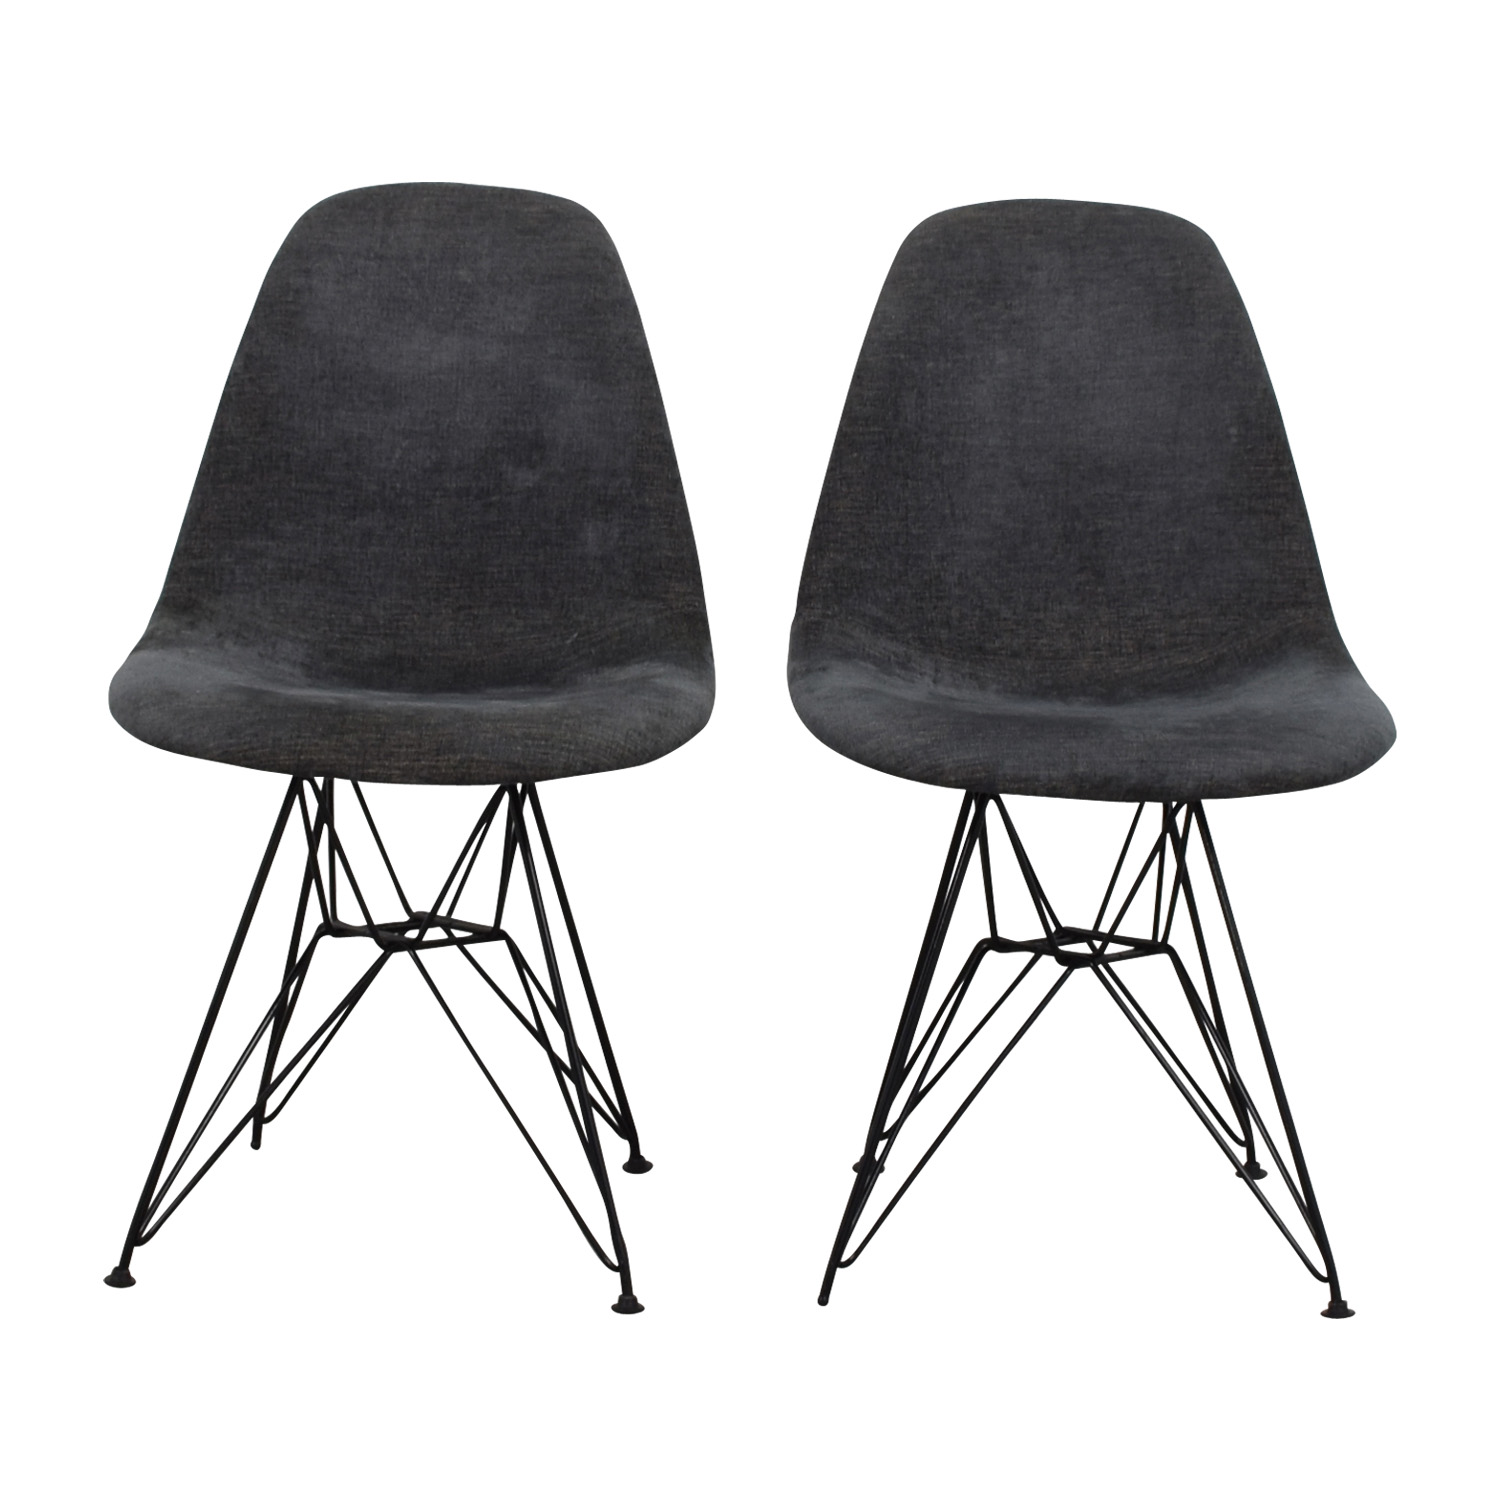 West Elm West Elm Grey Chairs Chairs